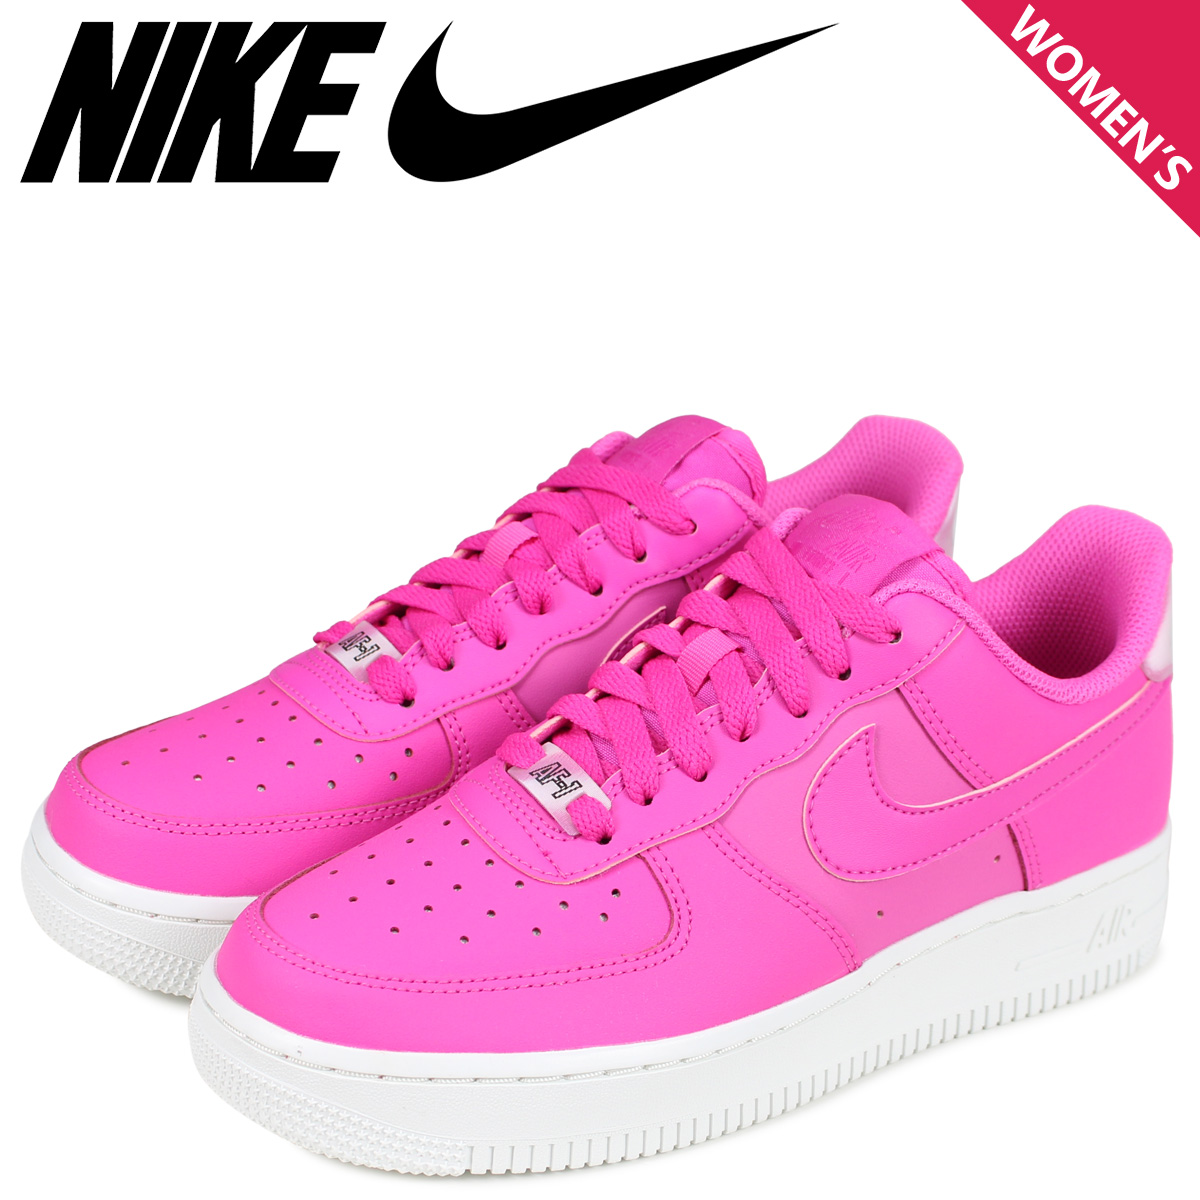 NIKE Nike air force 1 sneakers Lady's WMNS AIR FORCE 1 07 ESSENTIAL pink AO2132 600